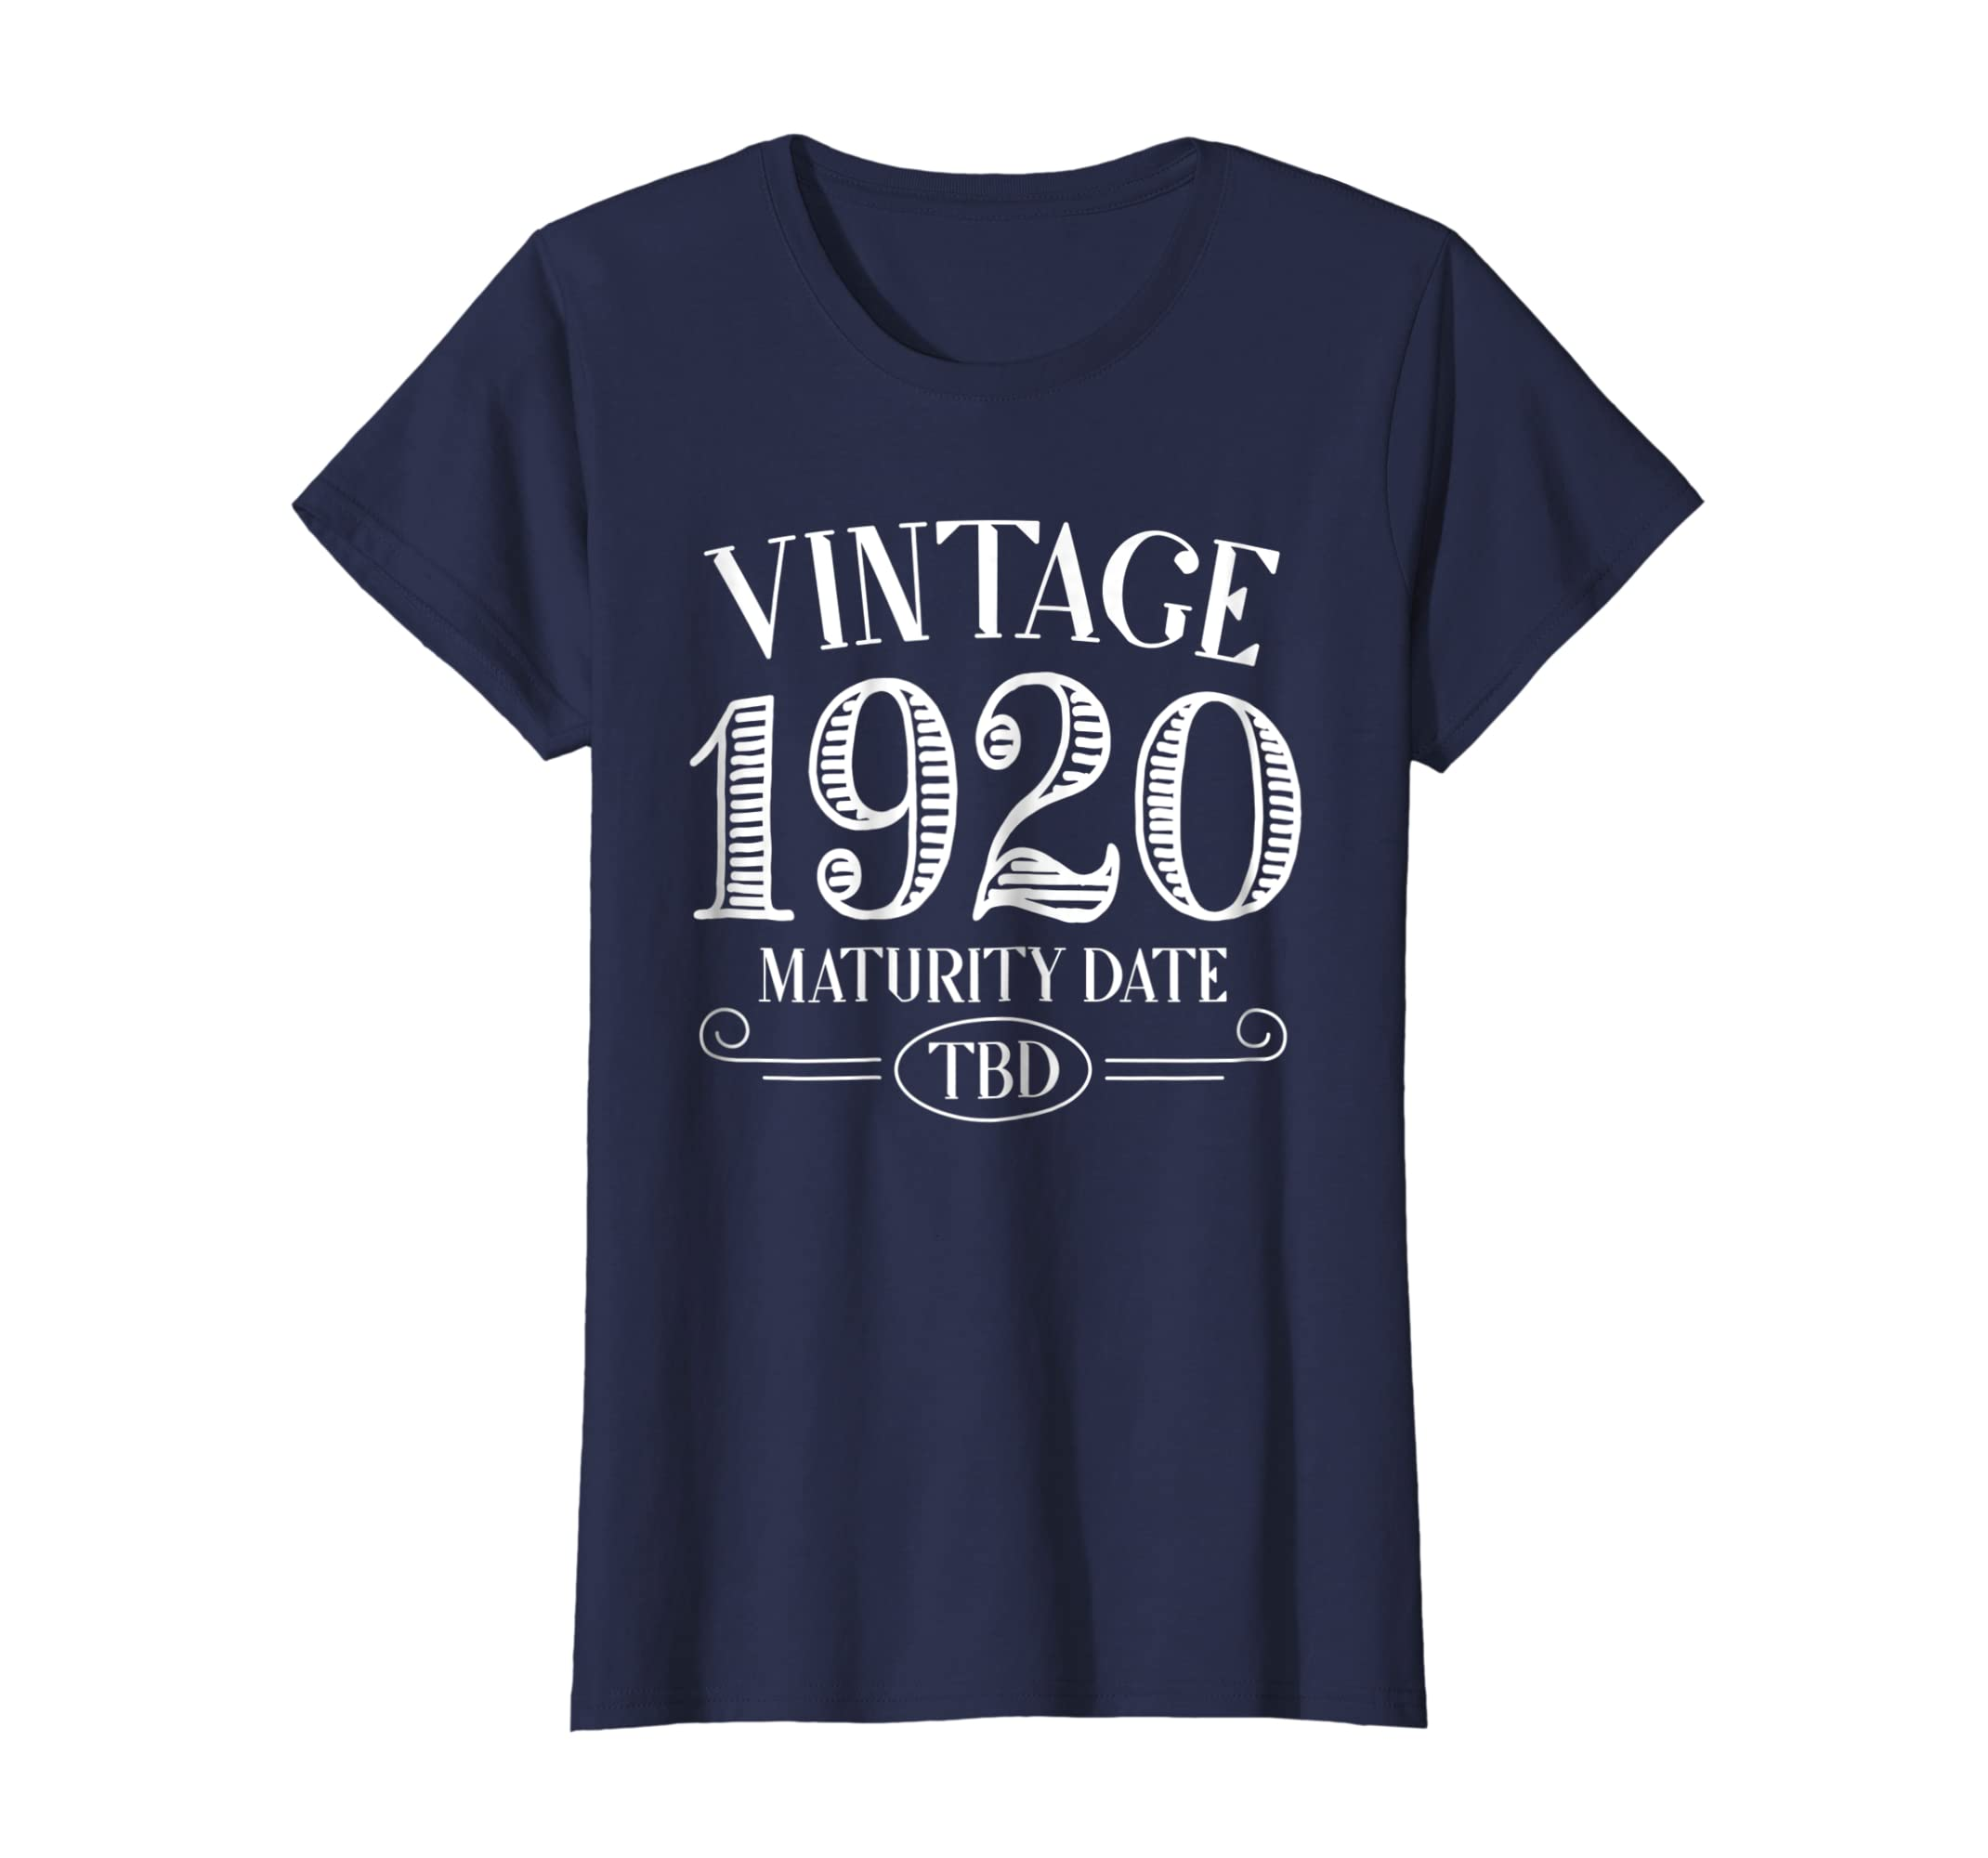 Dating vintage t shirts